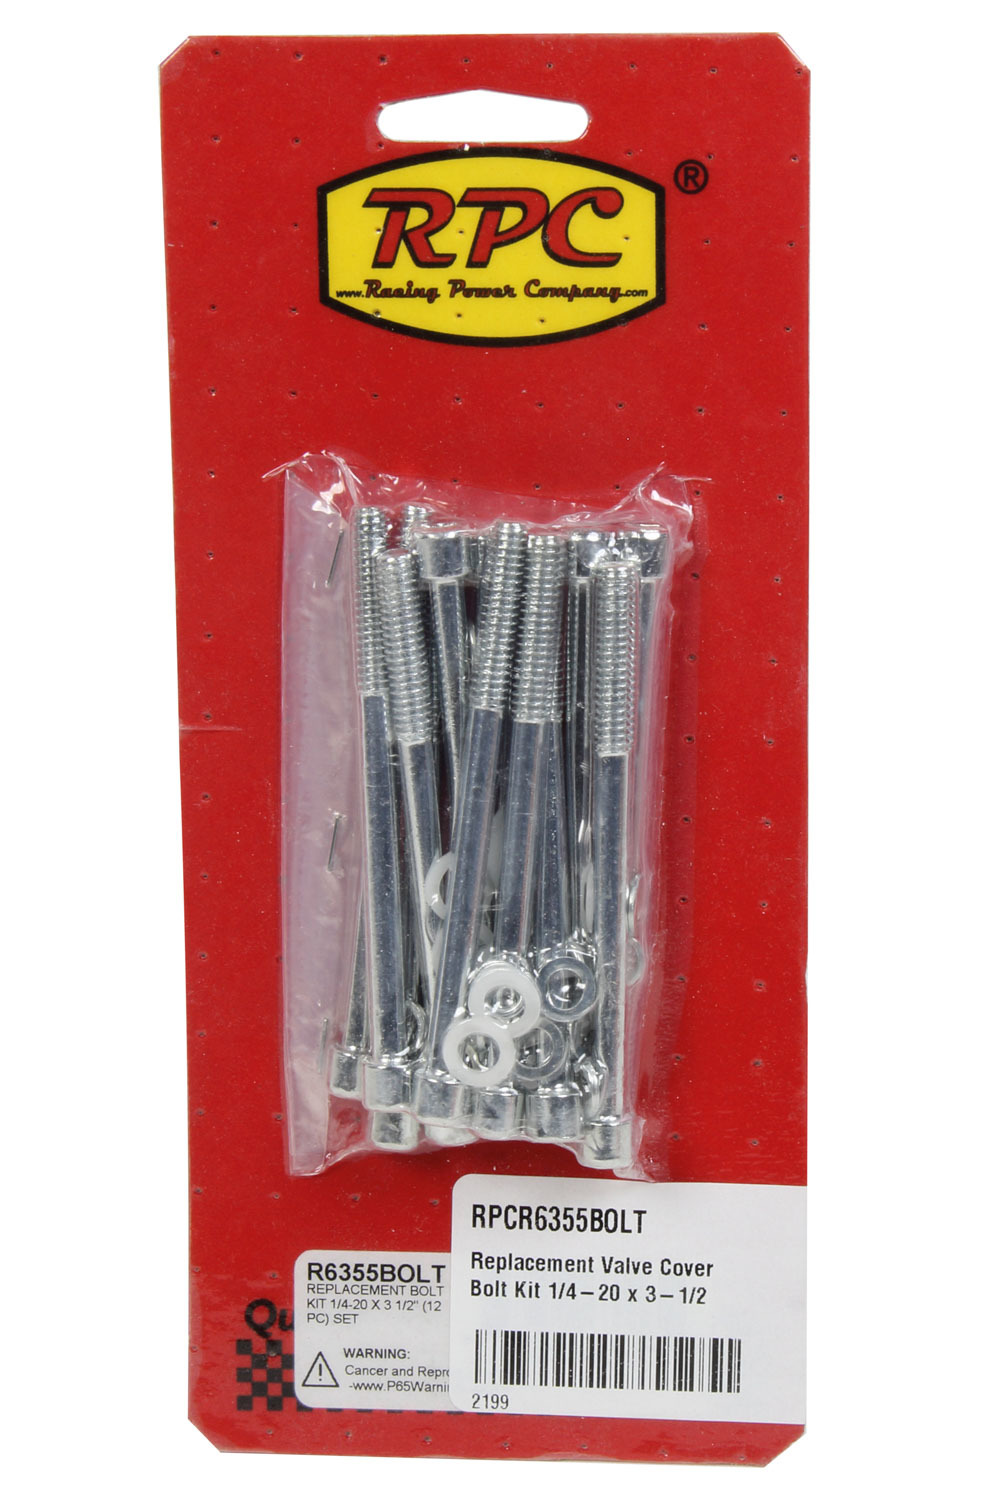 Racing Power Company R6355BOLT Replacement Valve Cover Bolt Kit 1/4-20 x 3-1/2